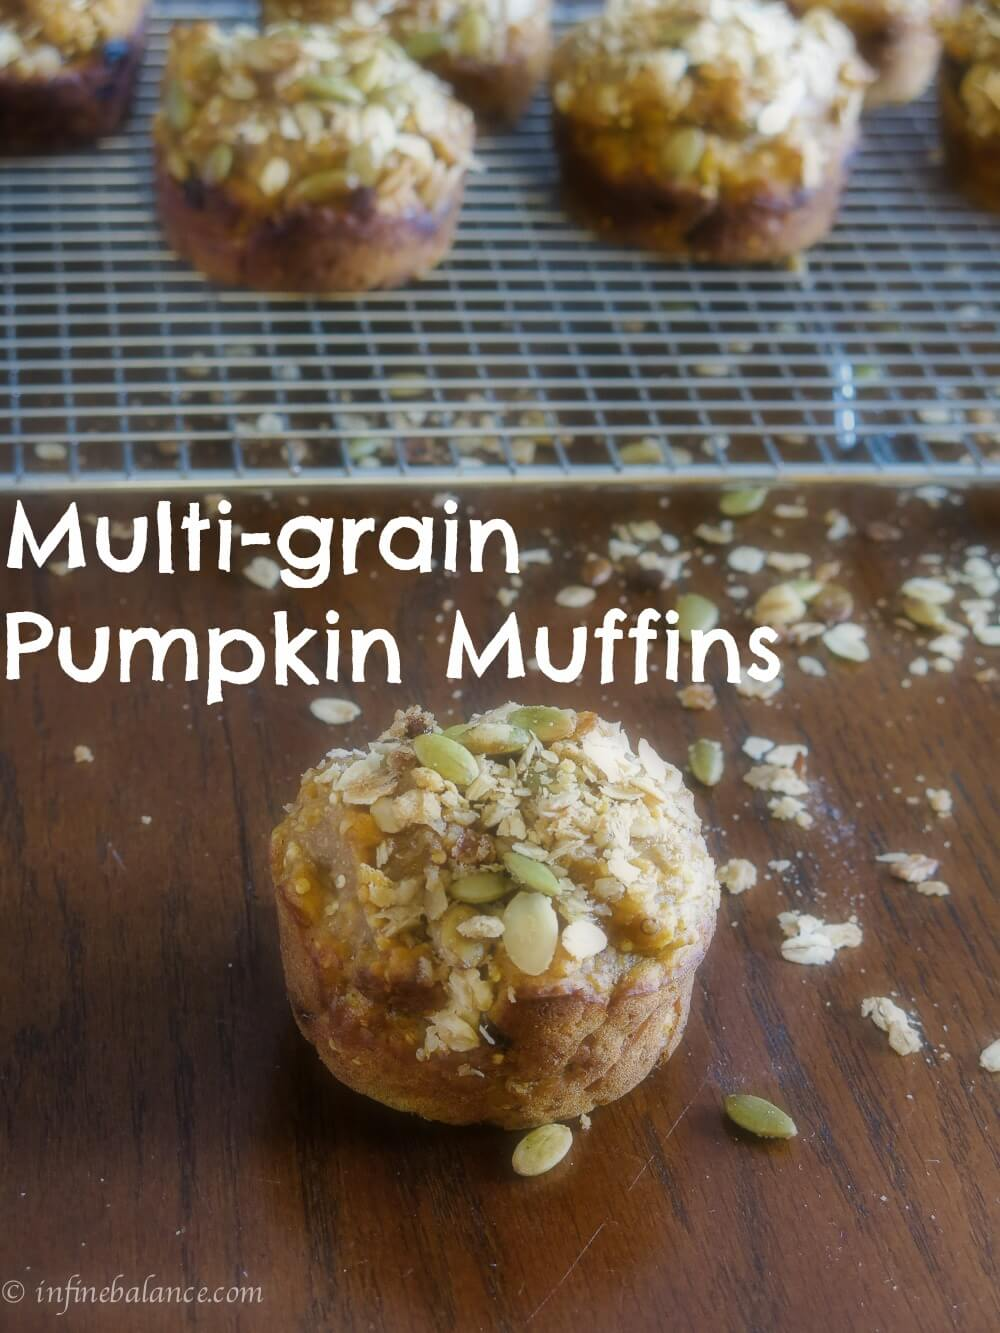 Multi-grain pumpkin muffins with brown sugar streusel topping vegan tips streusel pumpkin Muffins baking